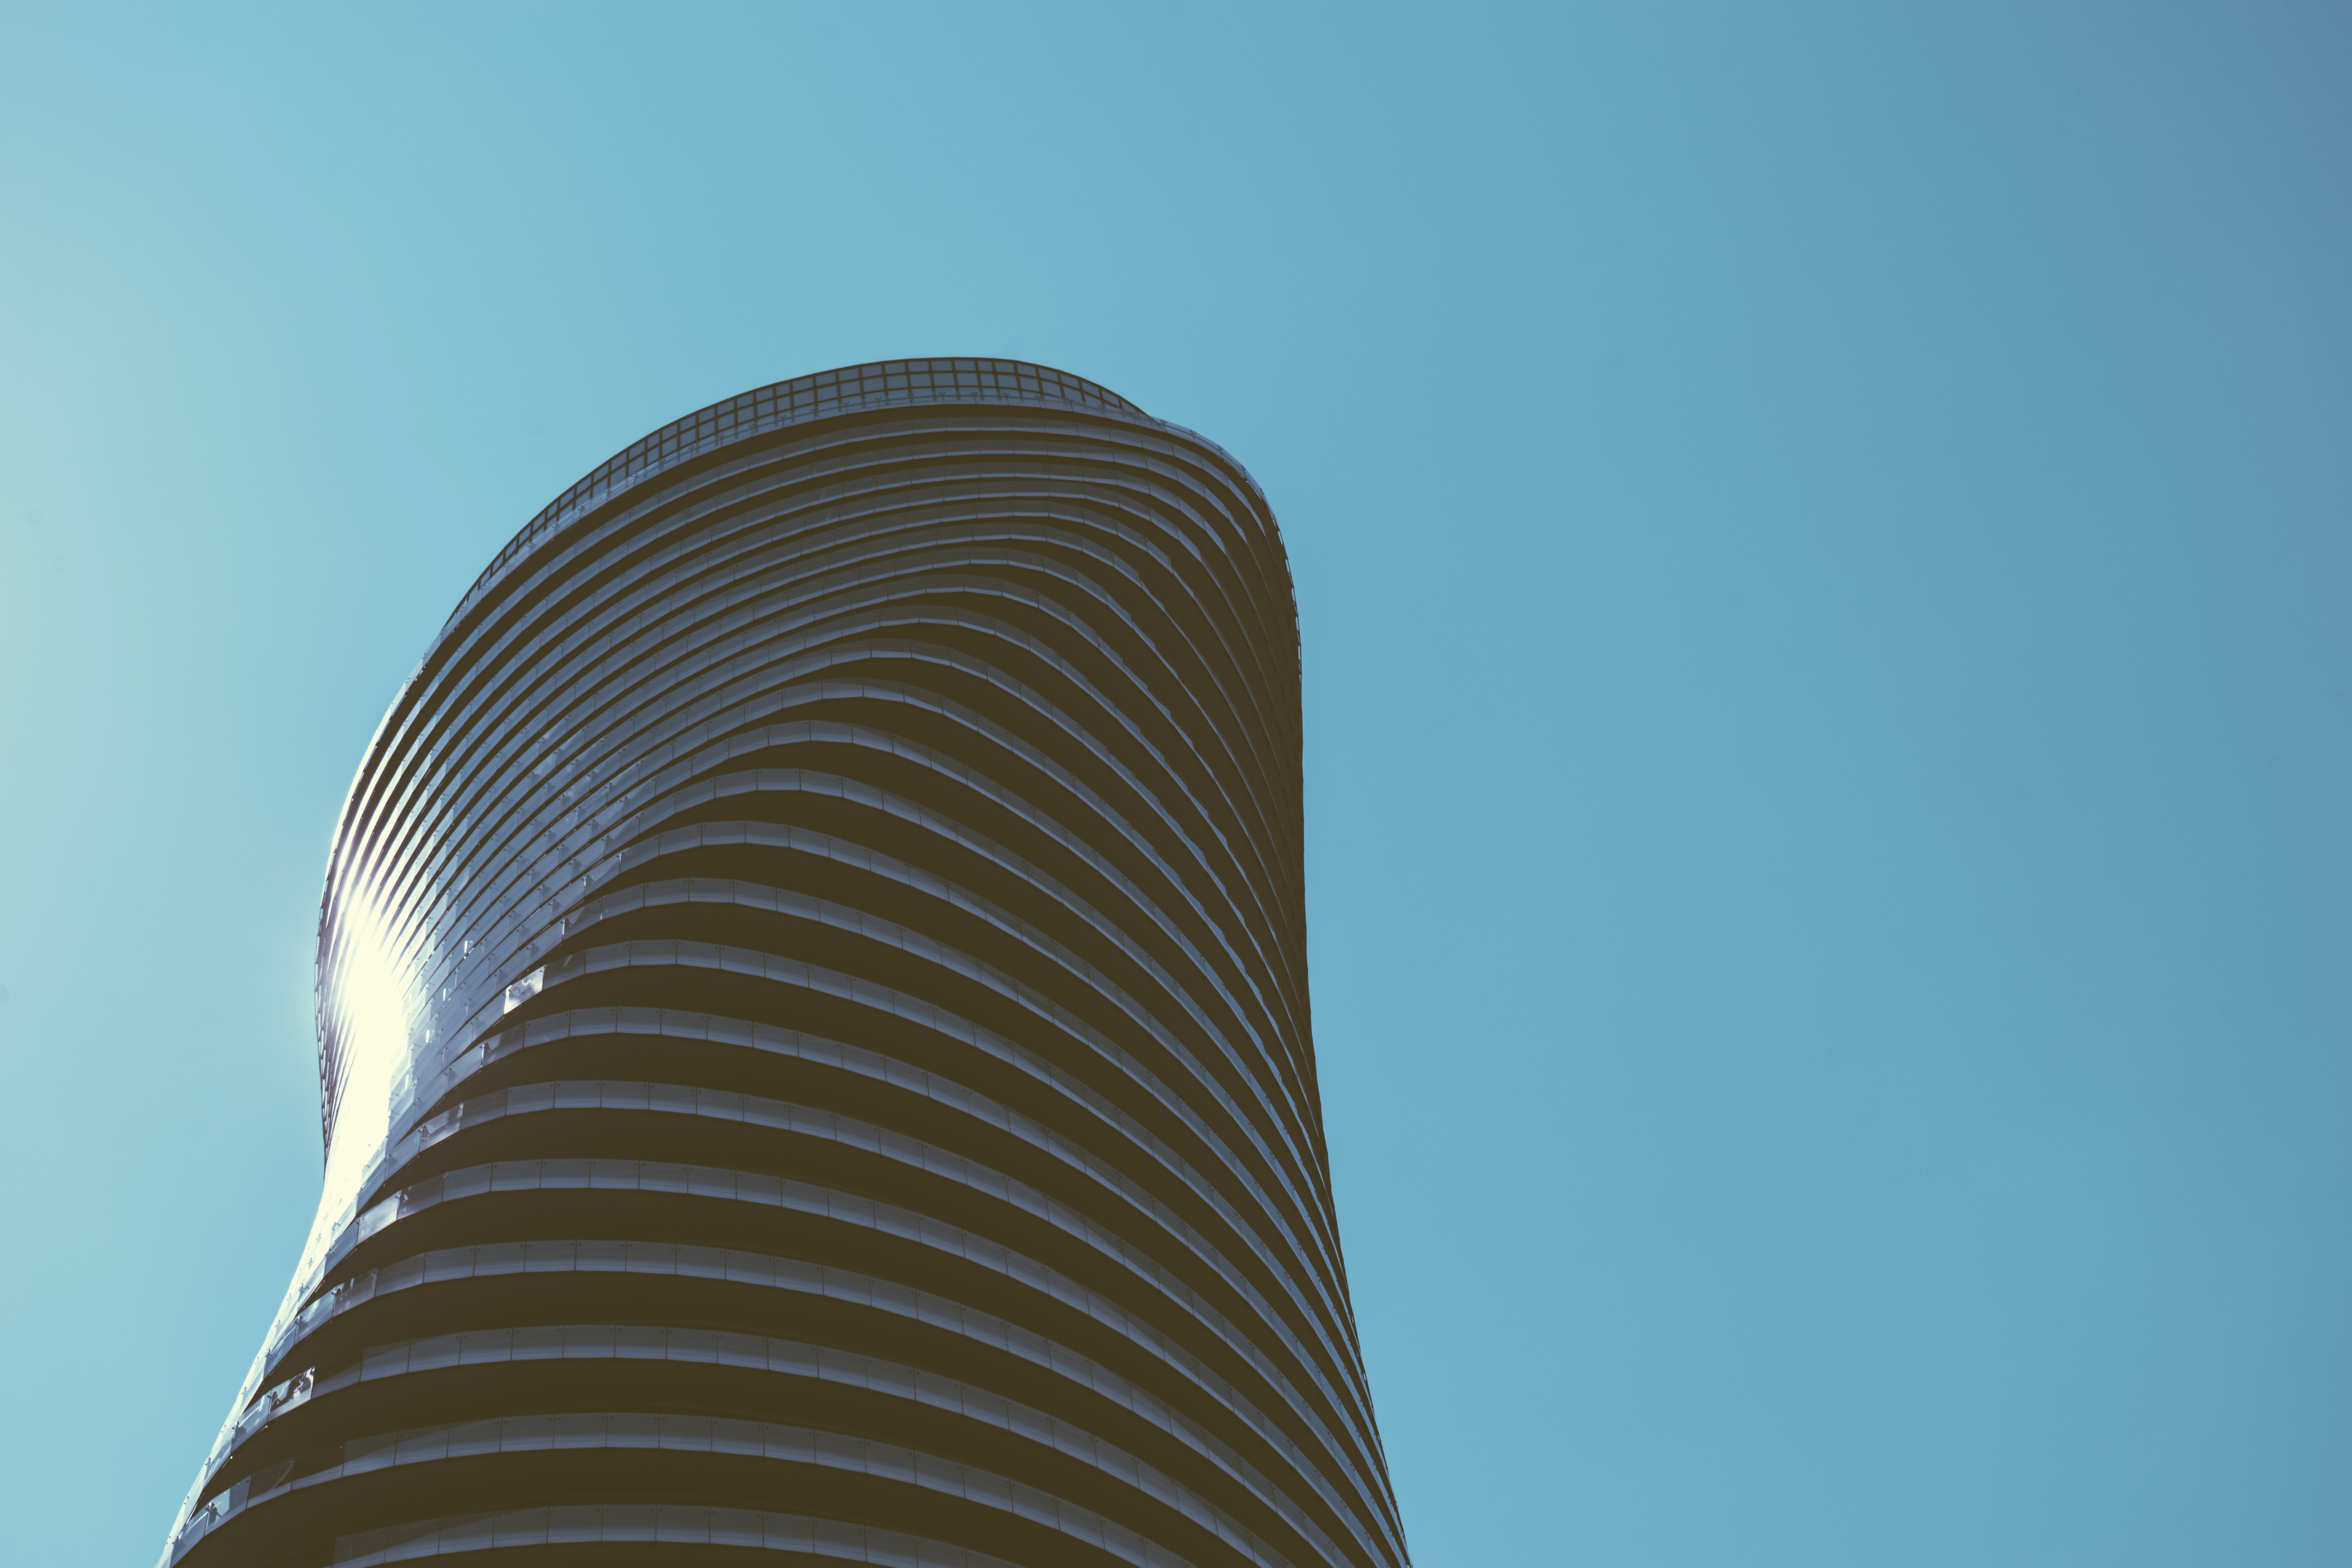 Sun reflected in the curved facade of a postmodern skyscraper